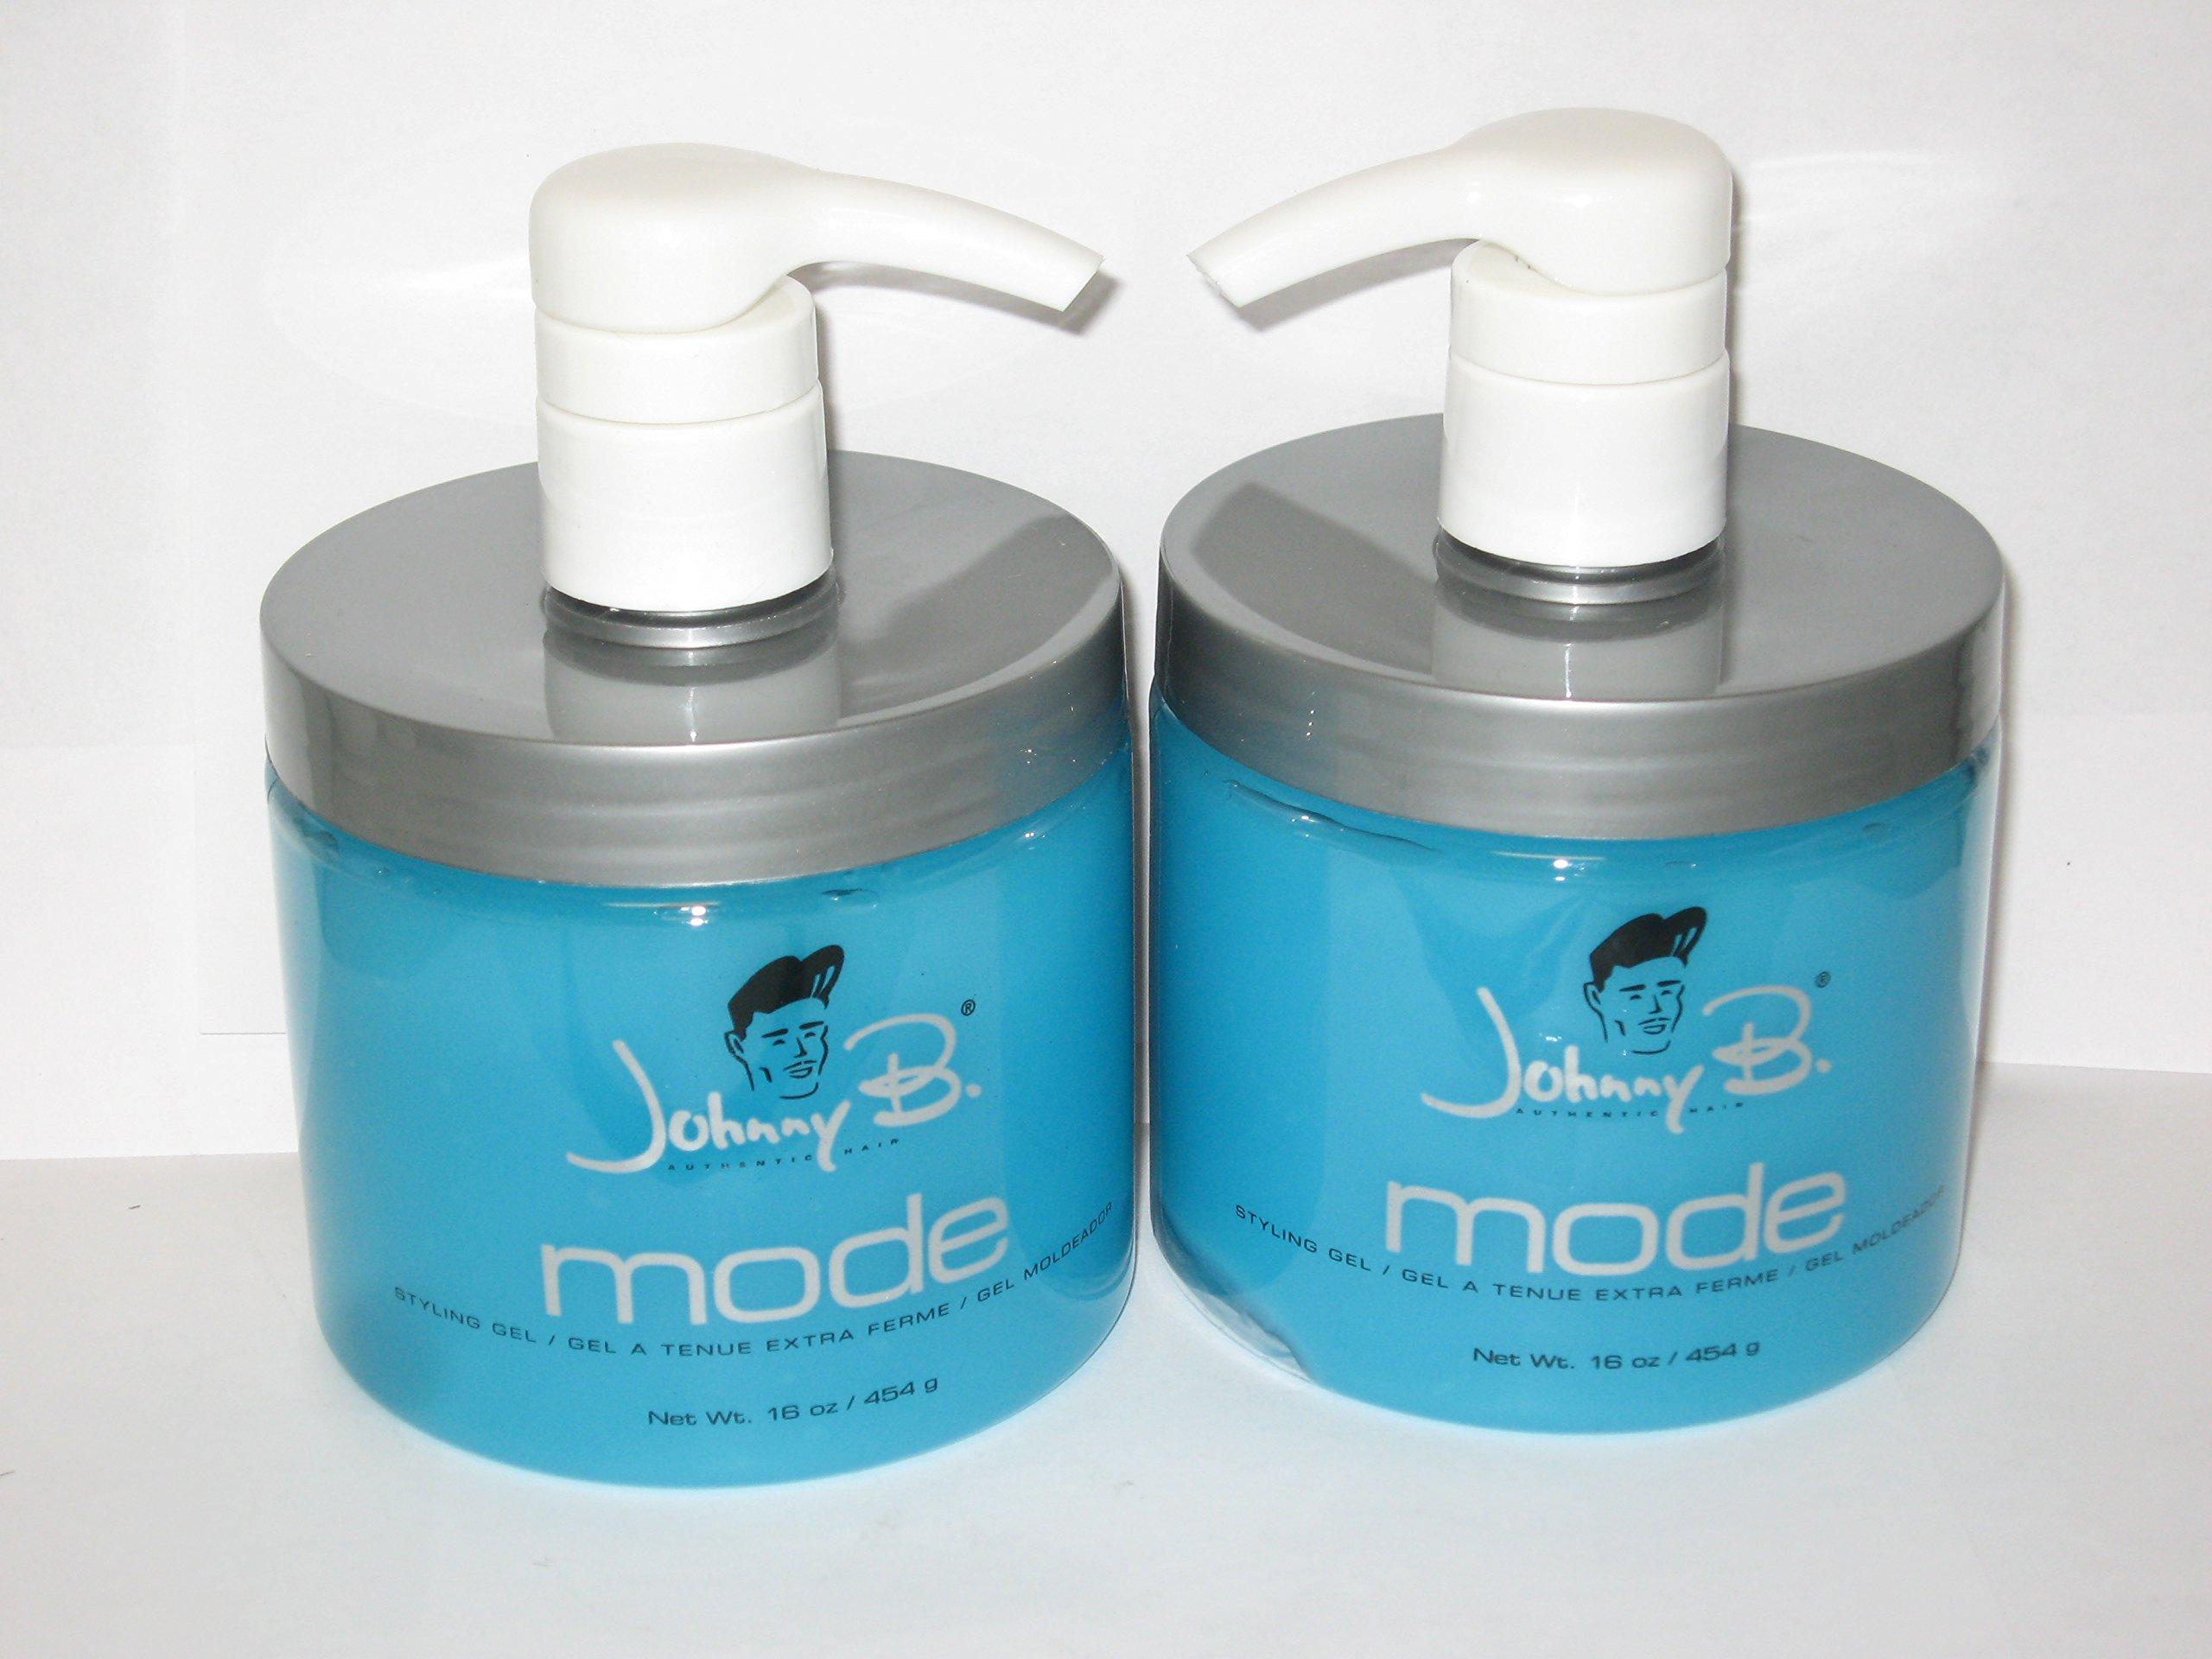 Johnny B Mode Styling Gel 16 Oz (Buy ONE GET ONE Free) (With Pump) (Pack of 2)